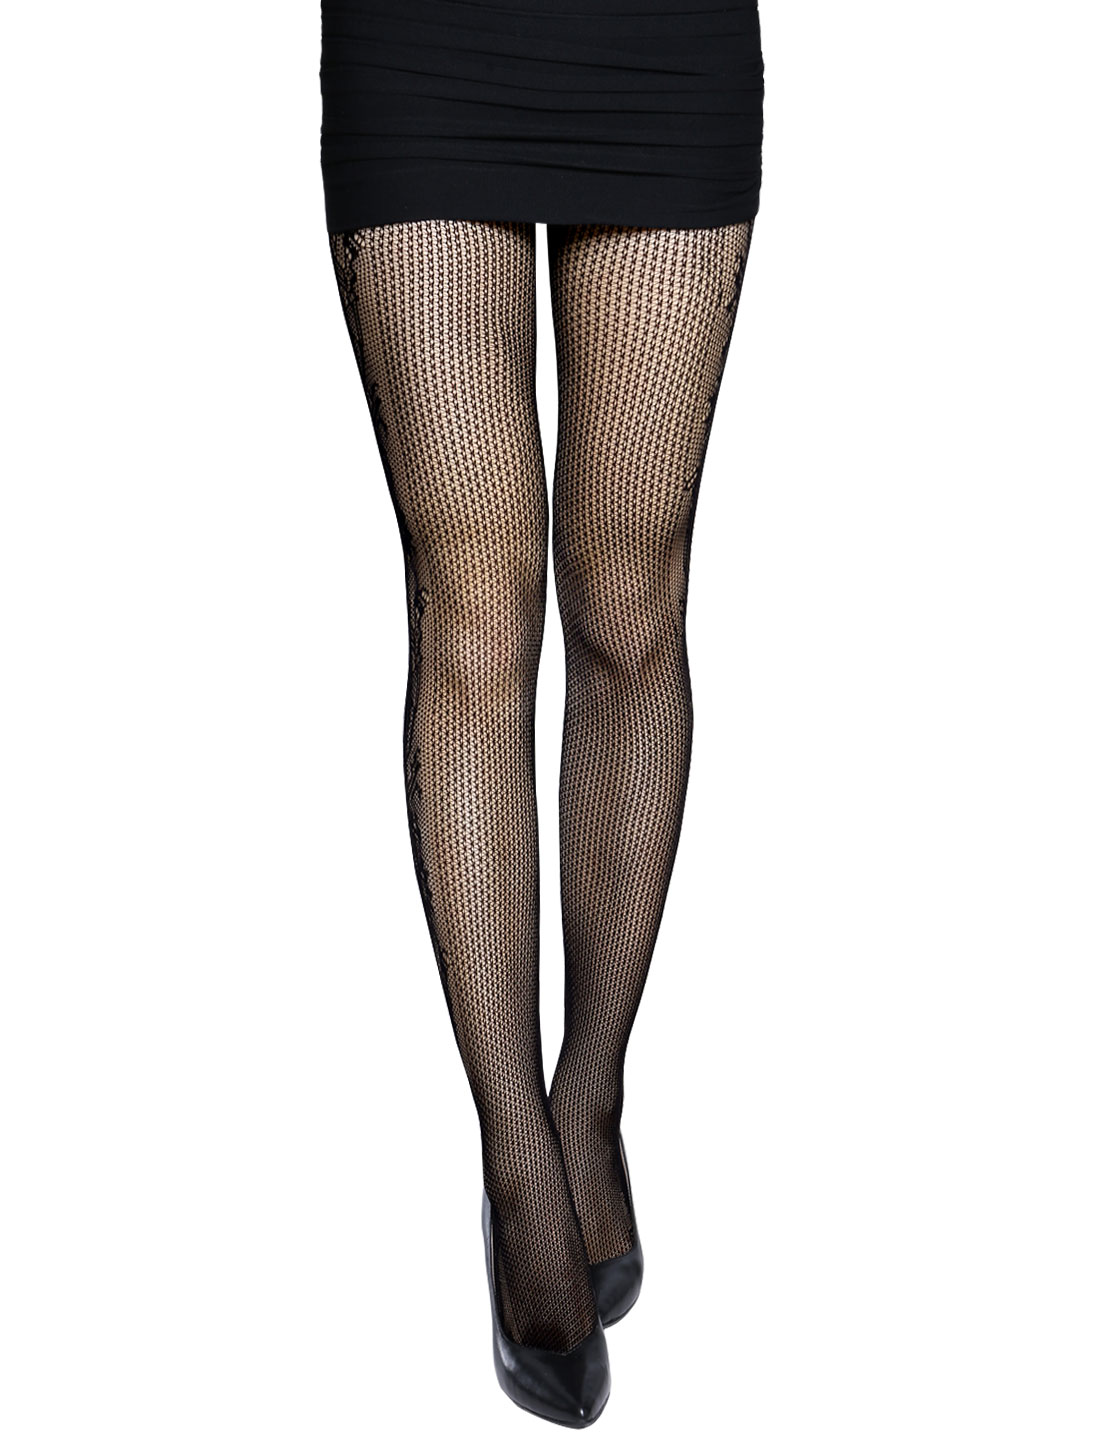 Women Elastic Waist See Through Floral Design Sexy Fishnet Pantyhose Black XS